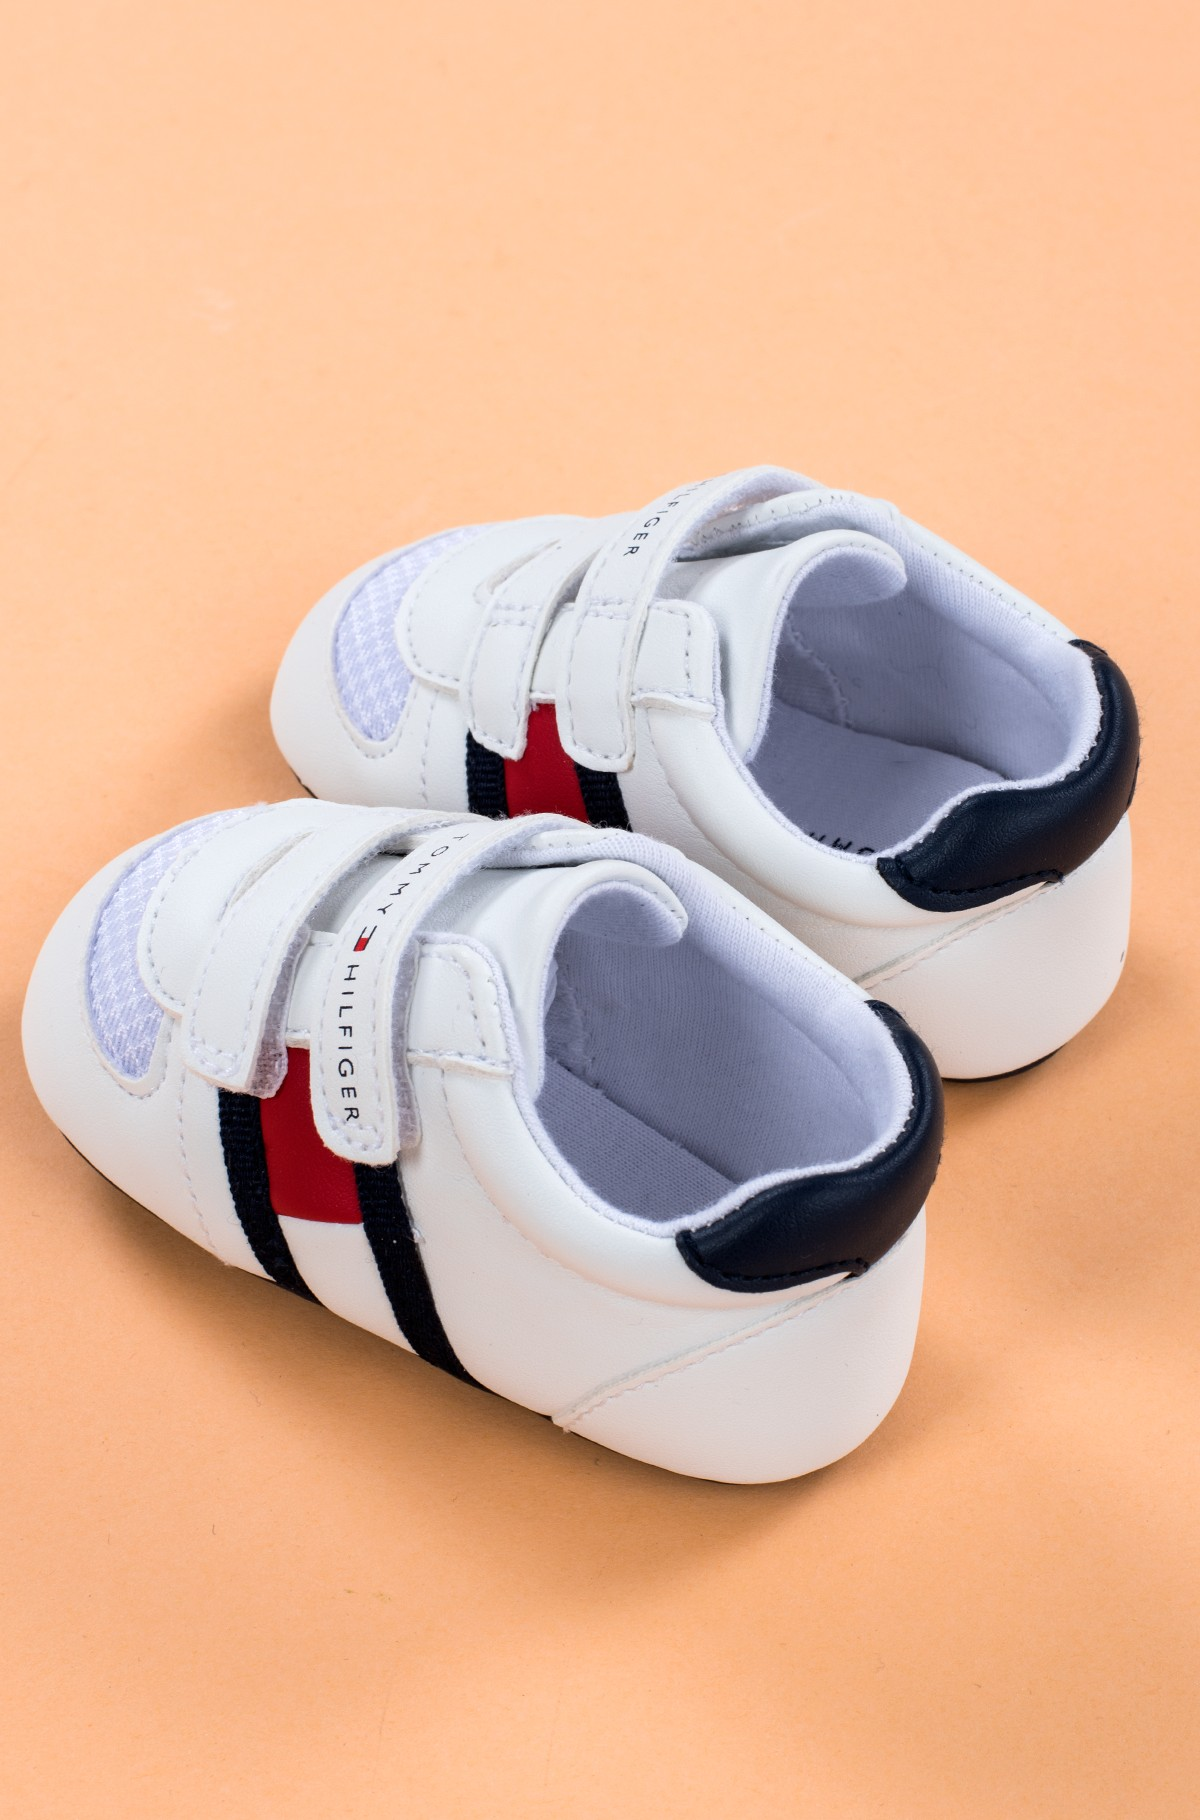 Kids' shoes in a gift box T0B4-30191-0271X336-full-2